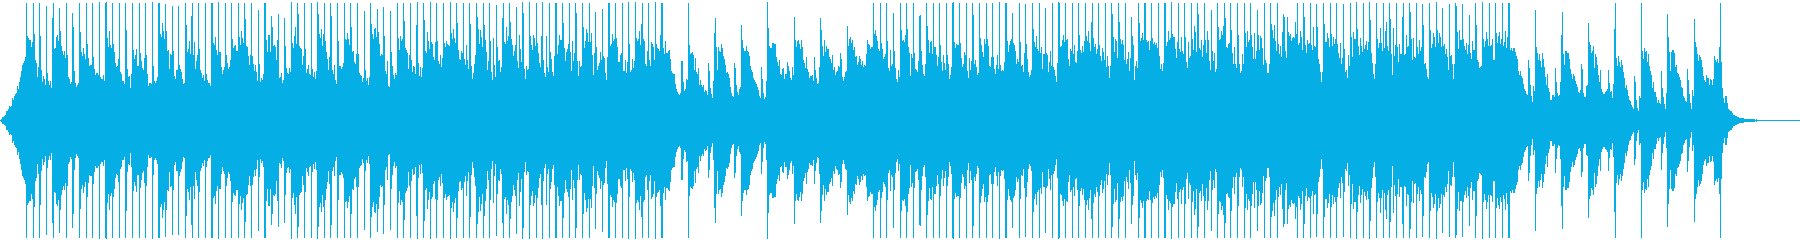 6 for companies! Piano cord that does not disturb the image's reproduced waveform